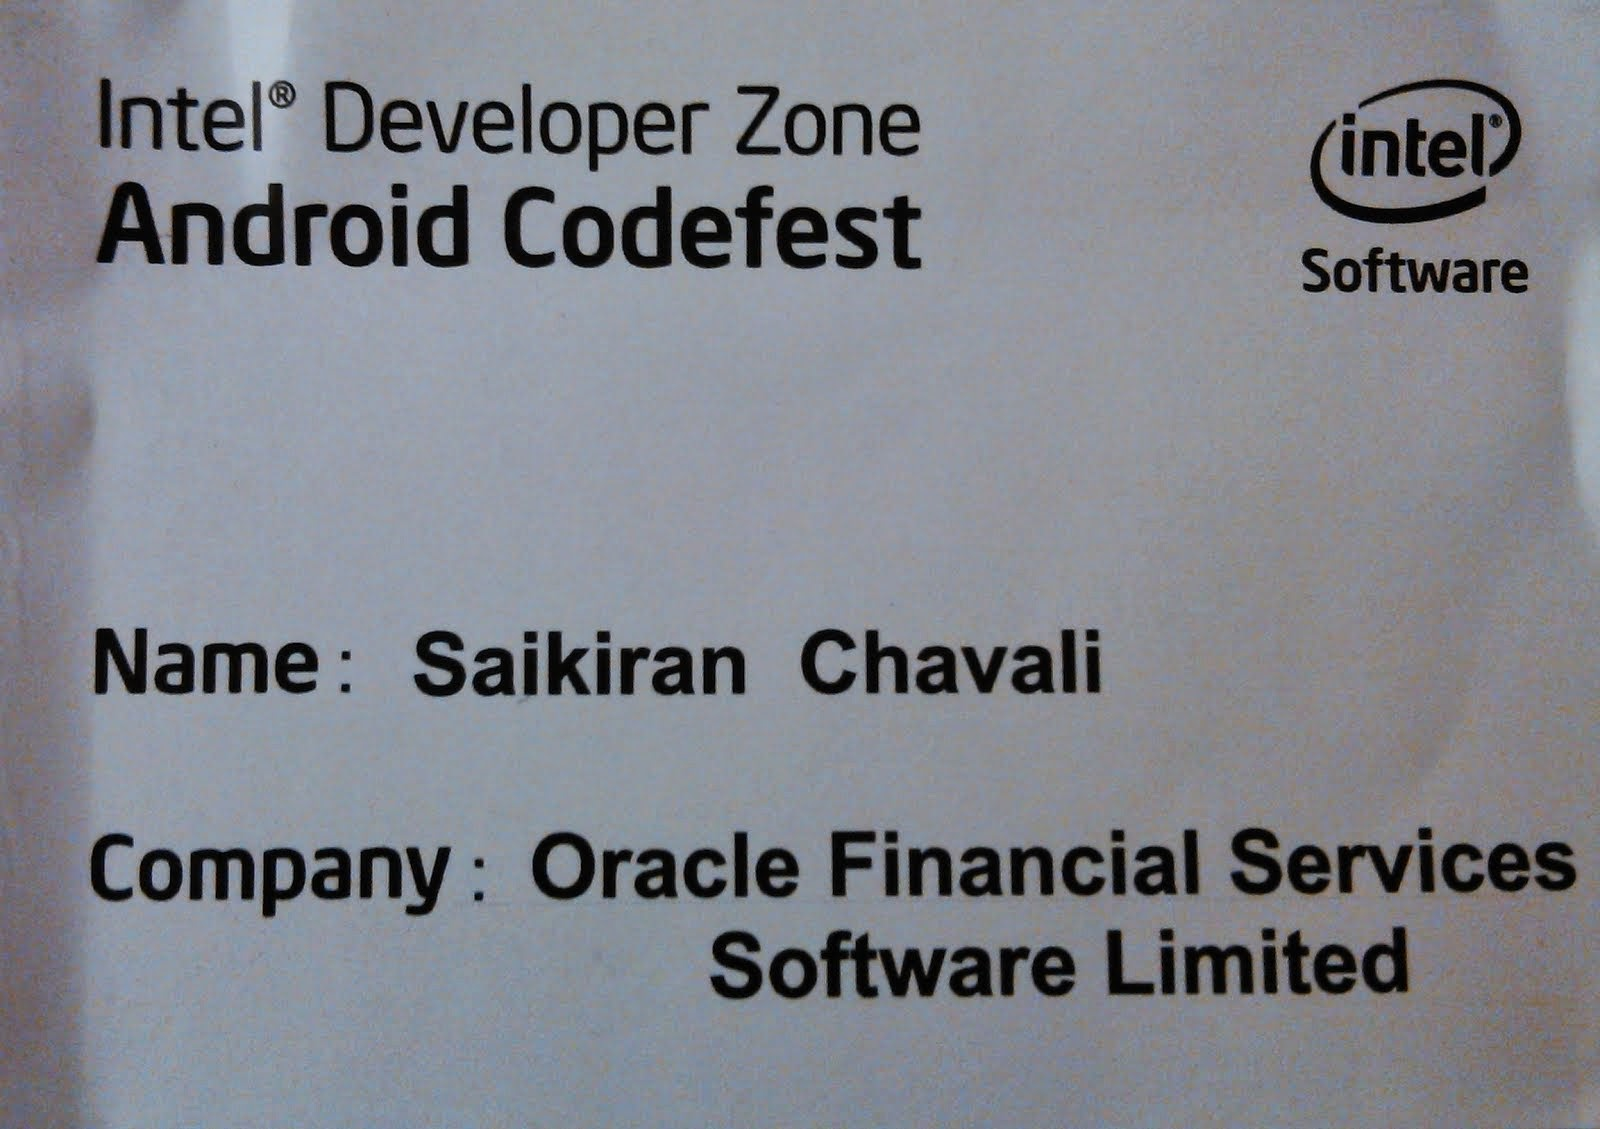 Android Codefest